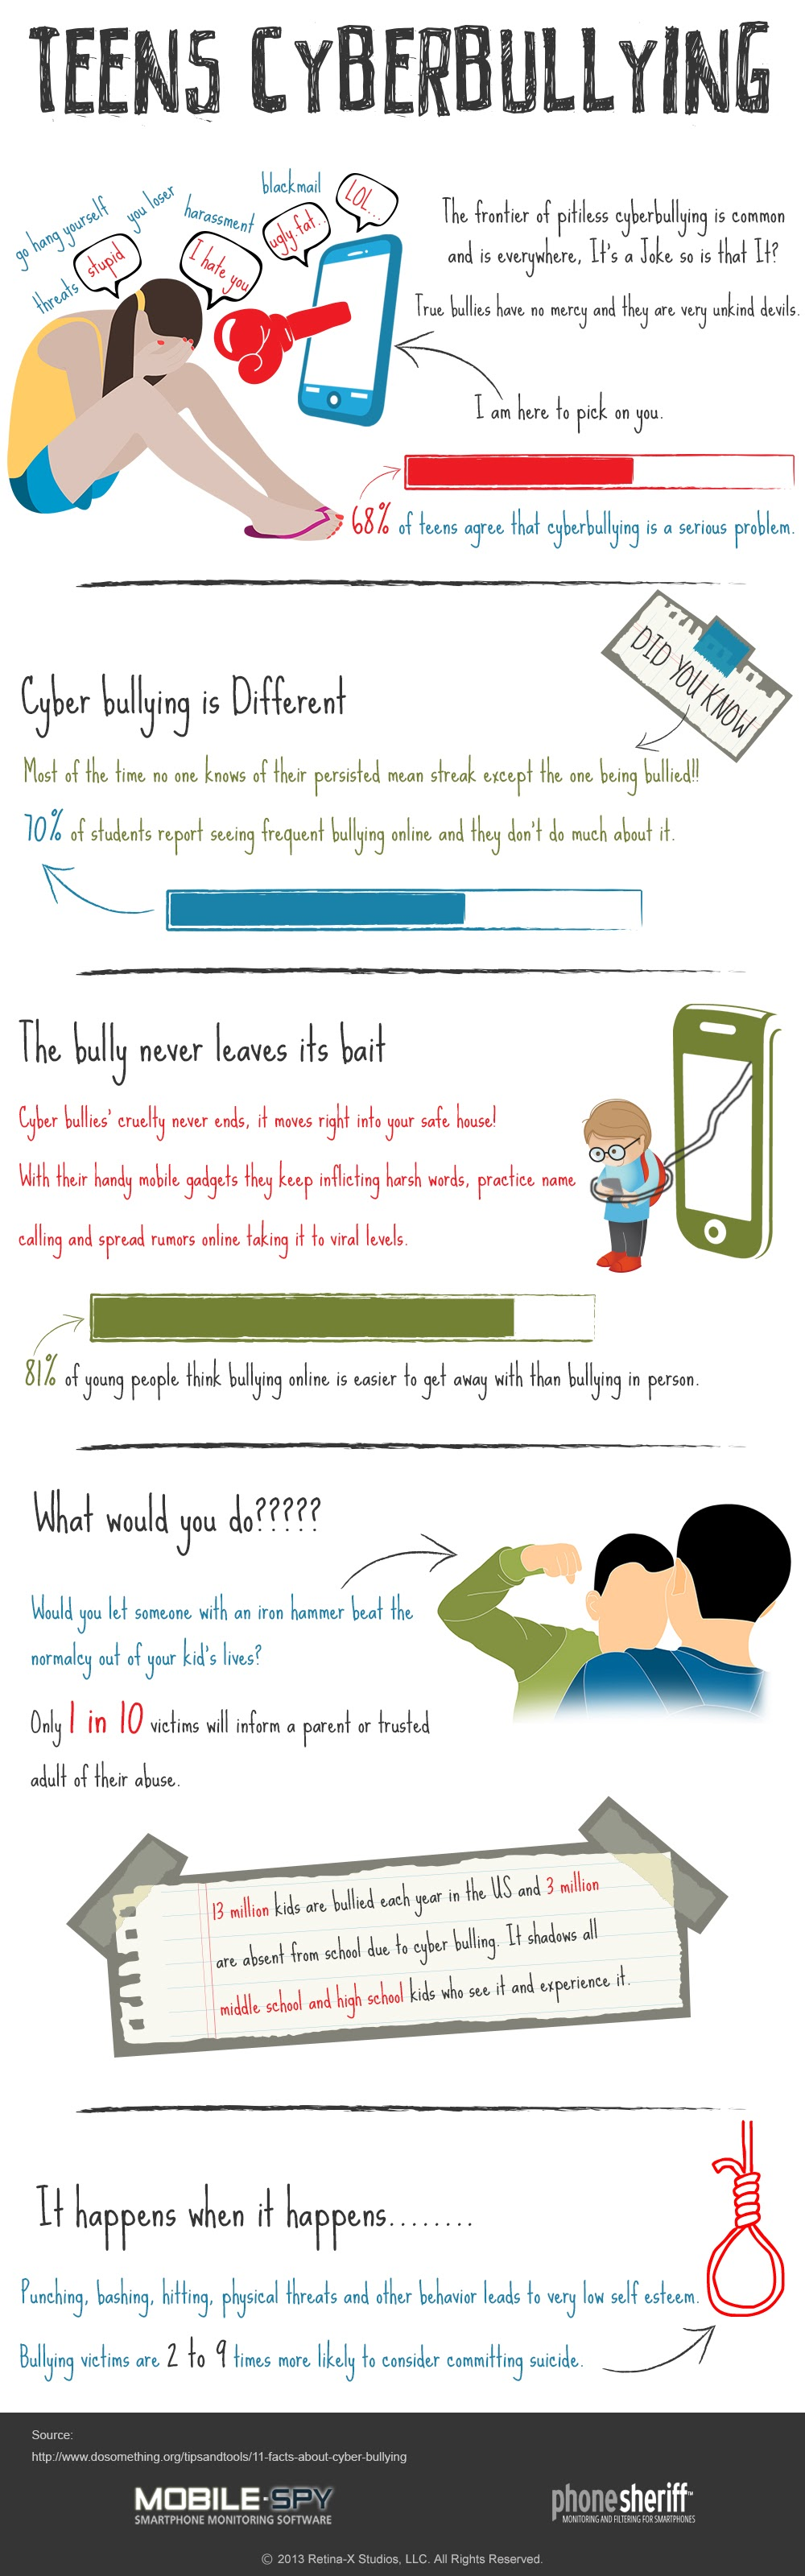 Teens Cyber Bullying #Infographic